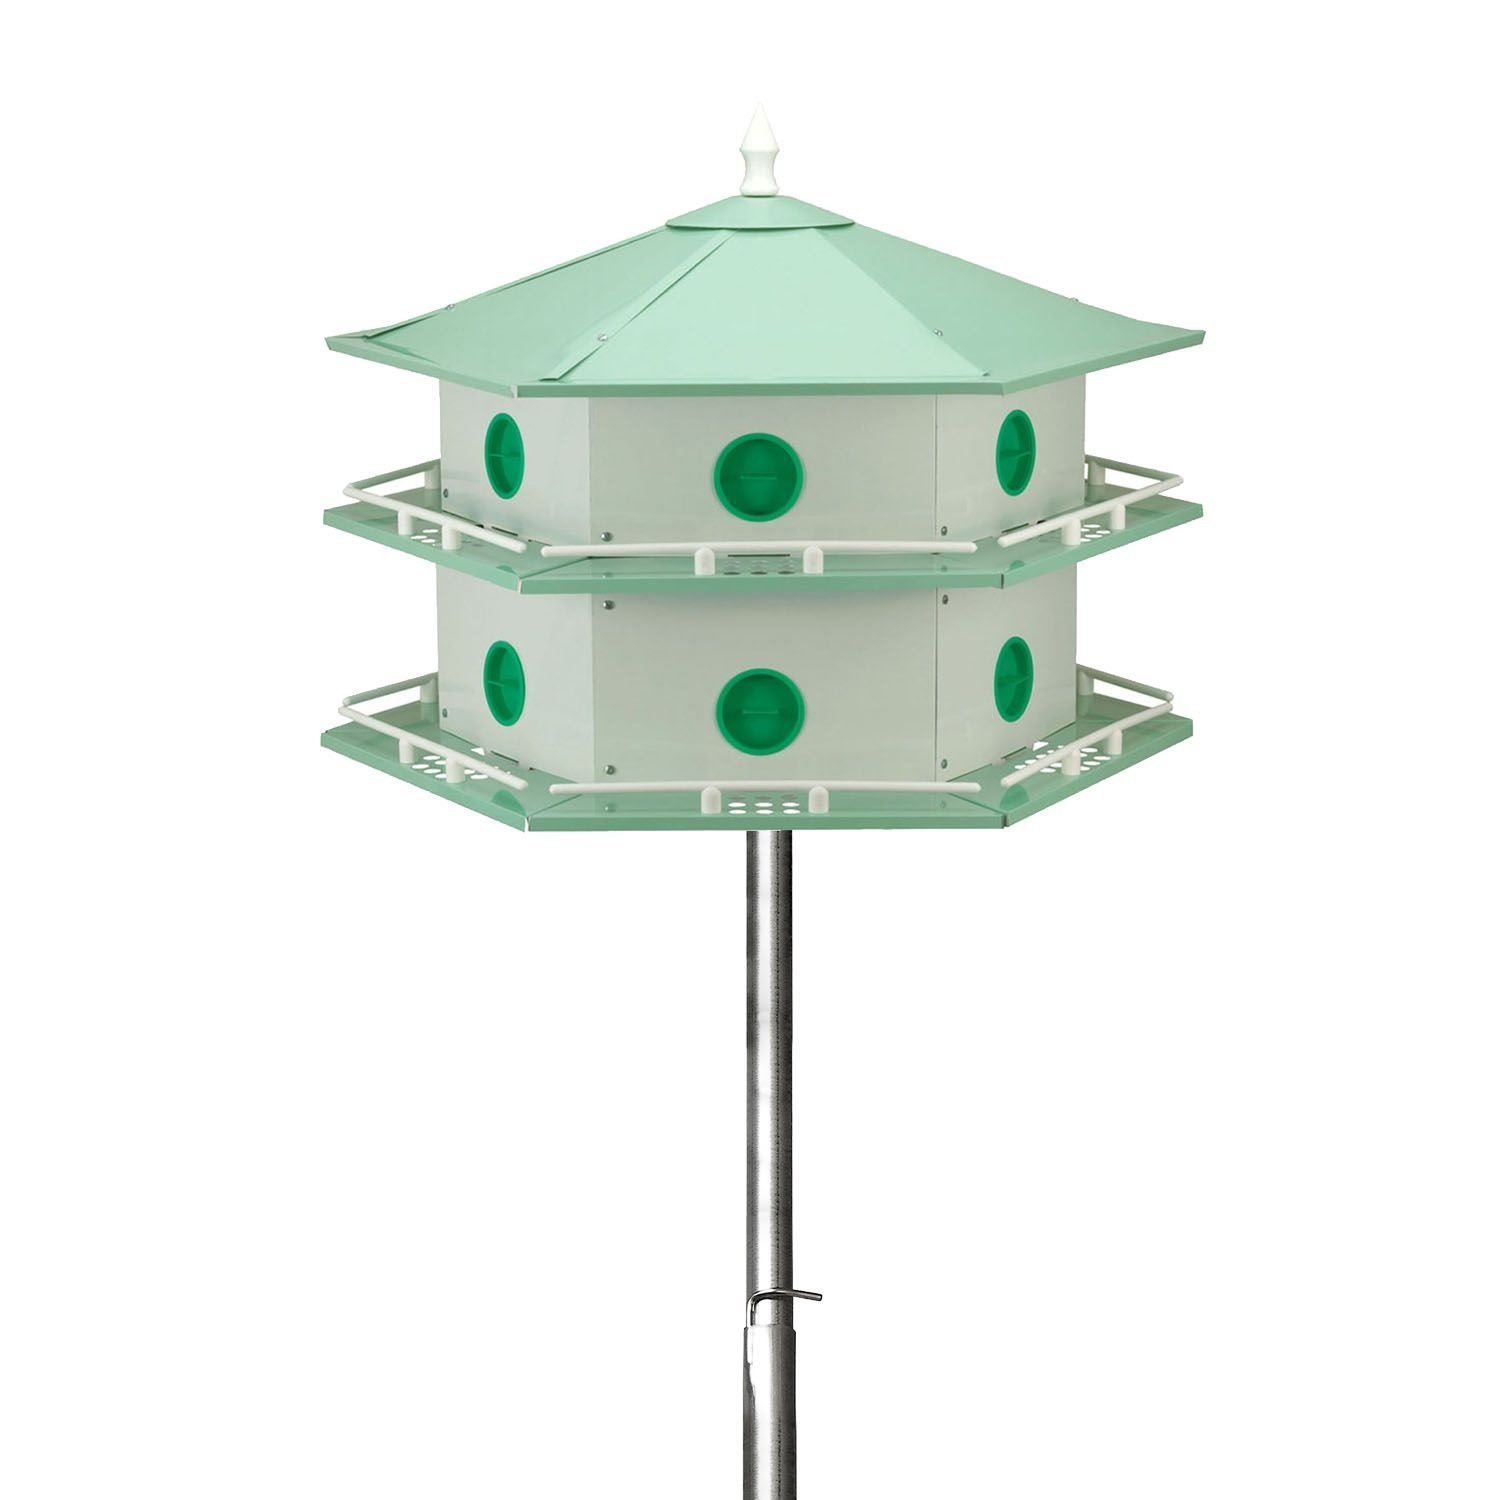 15' Telescoping Purple Martin House Pole Kit with 12-Room Aluminum House by Branco